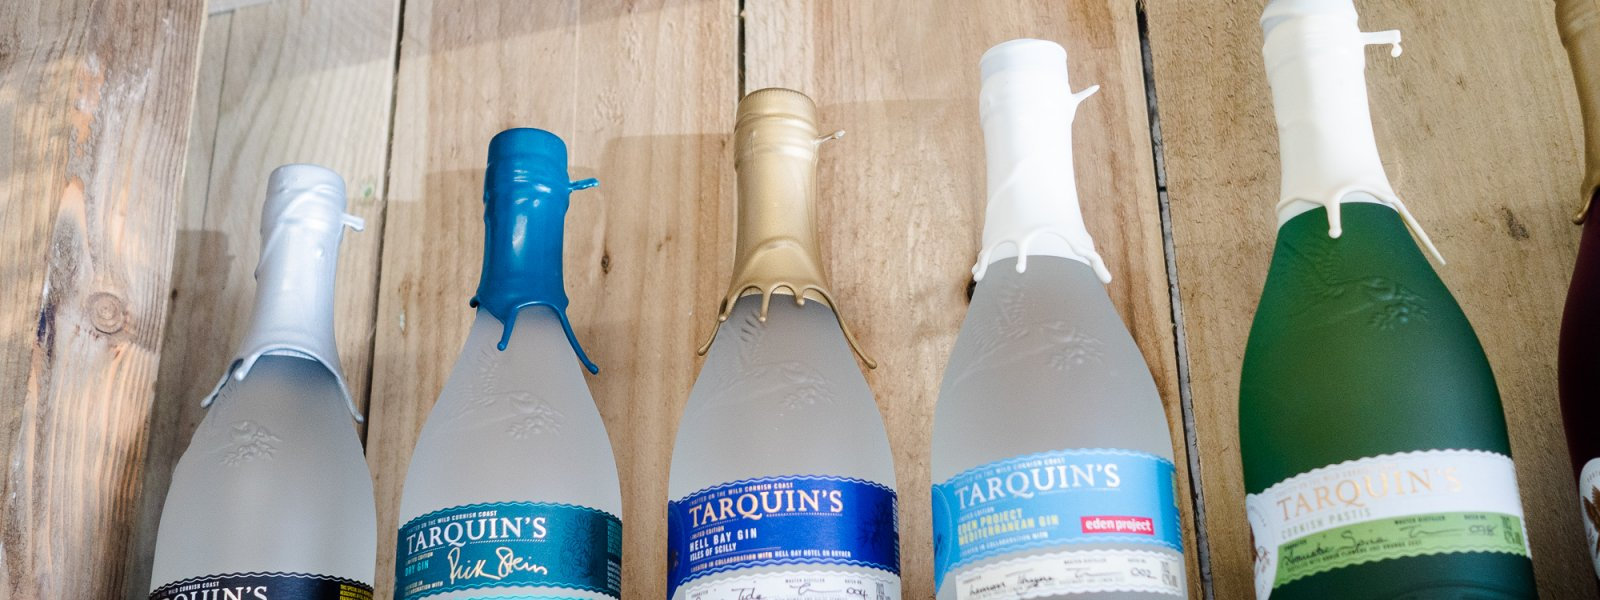 The Tarquin's Cornish Gin Experience